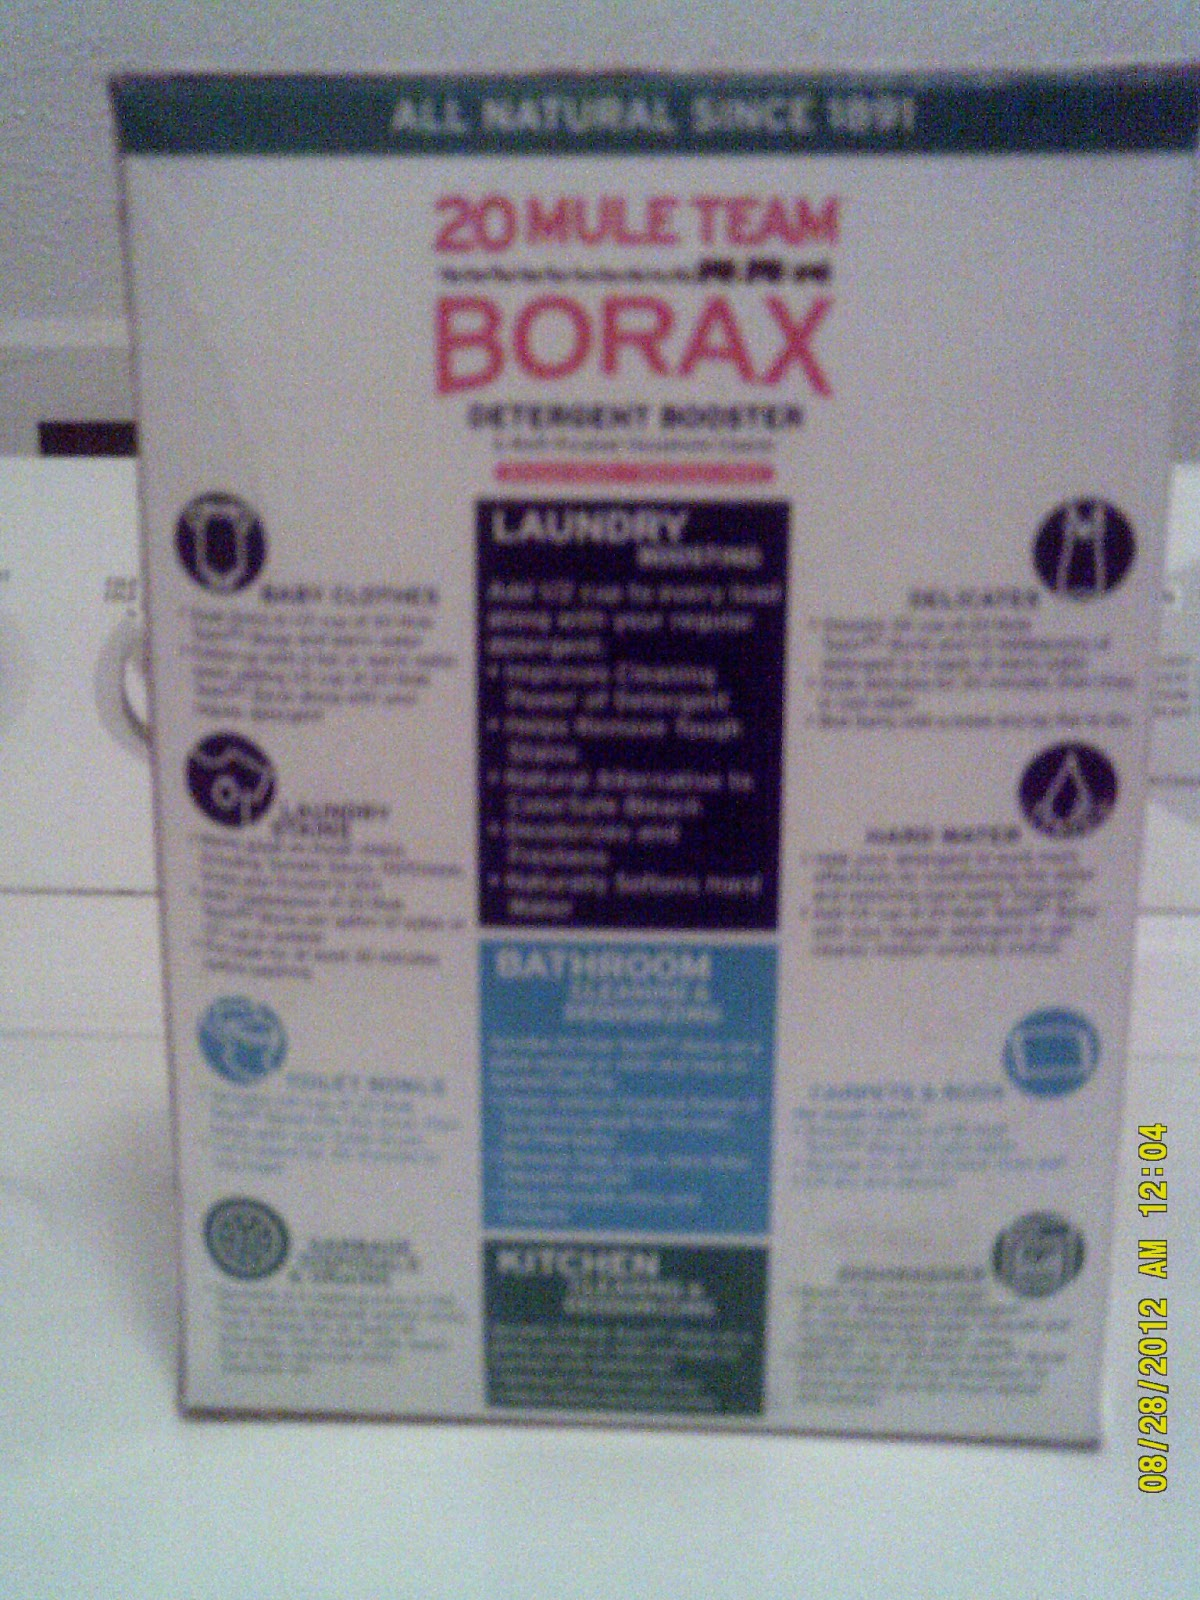 Trying New Products Giveaway 20 Mule Team Borax